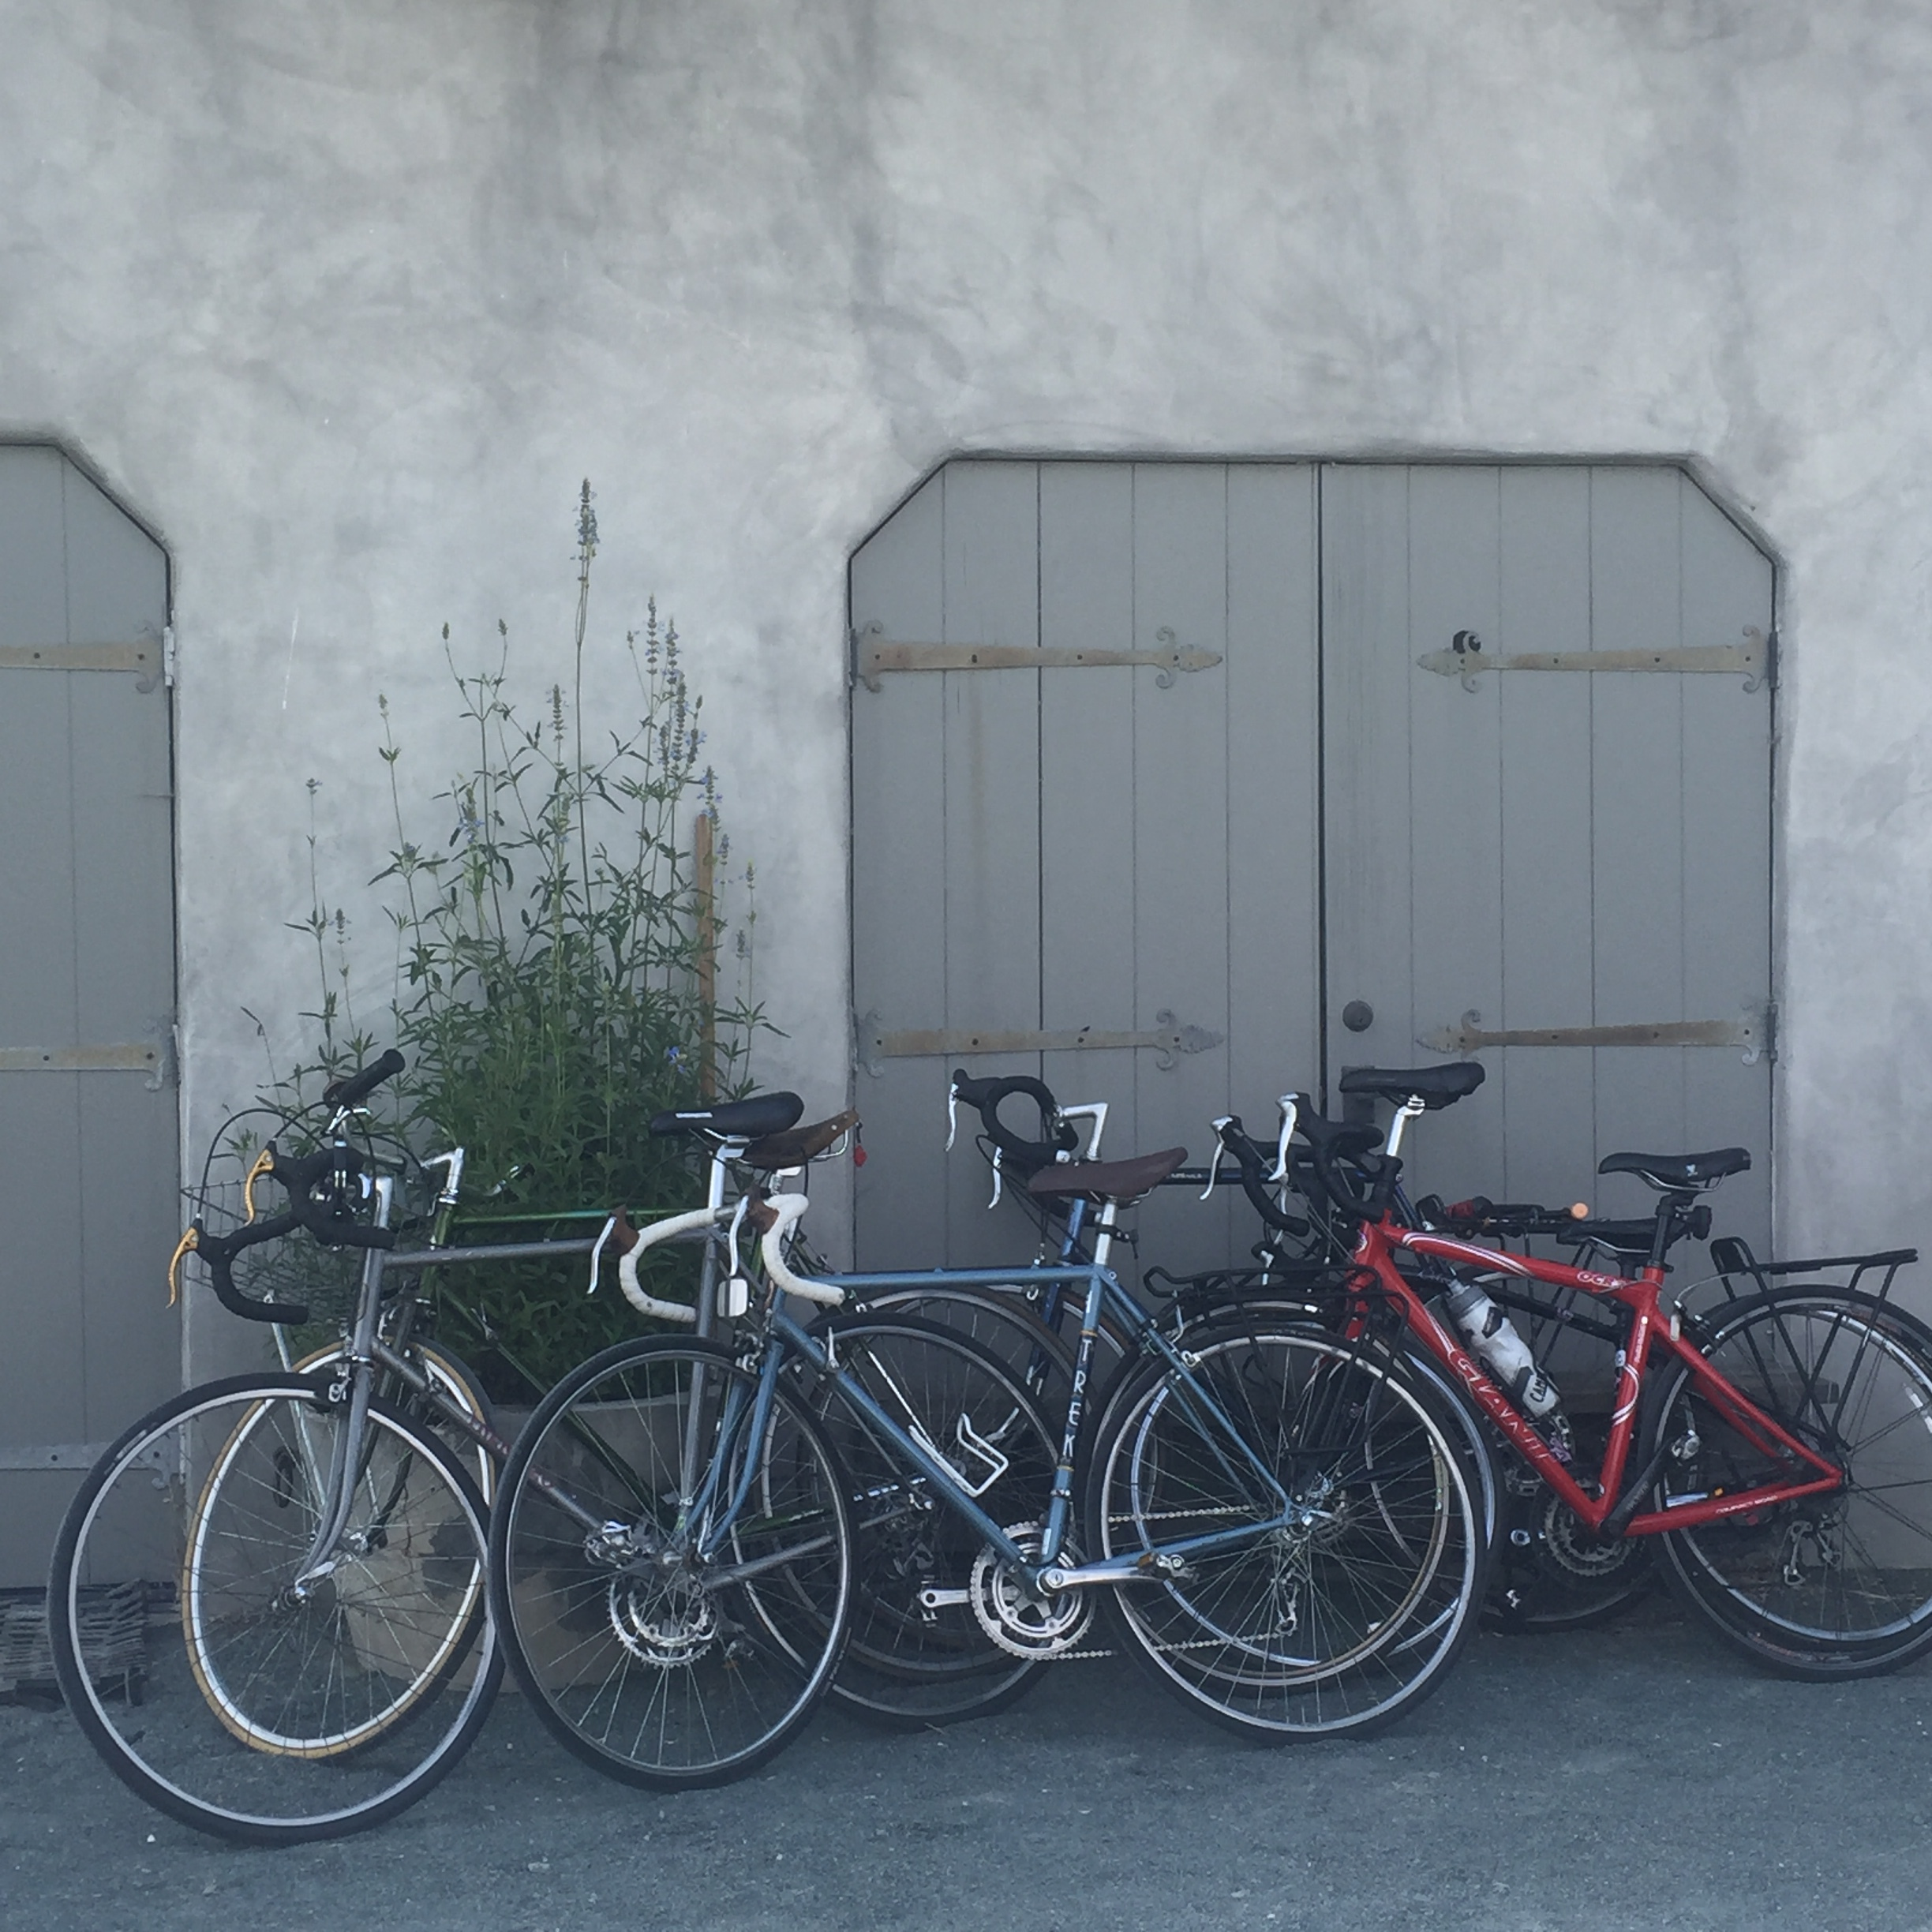 Bikes available to use on The Farm